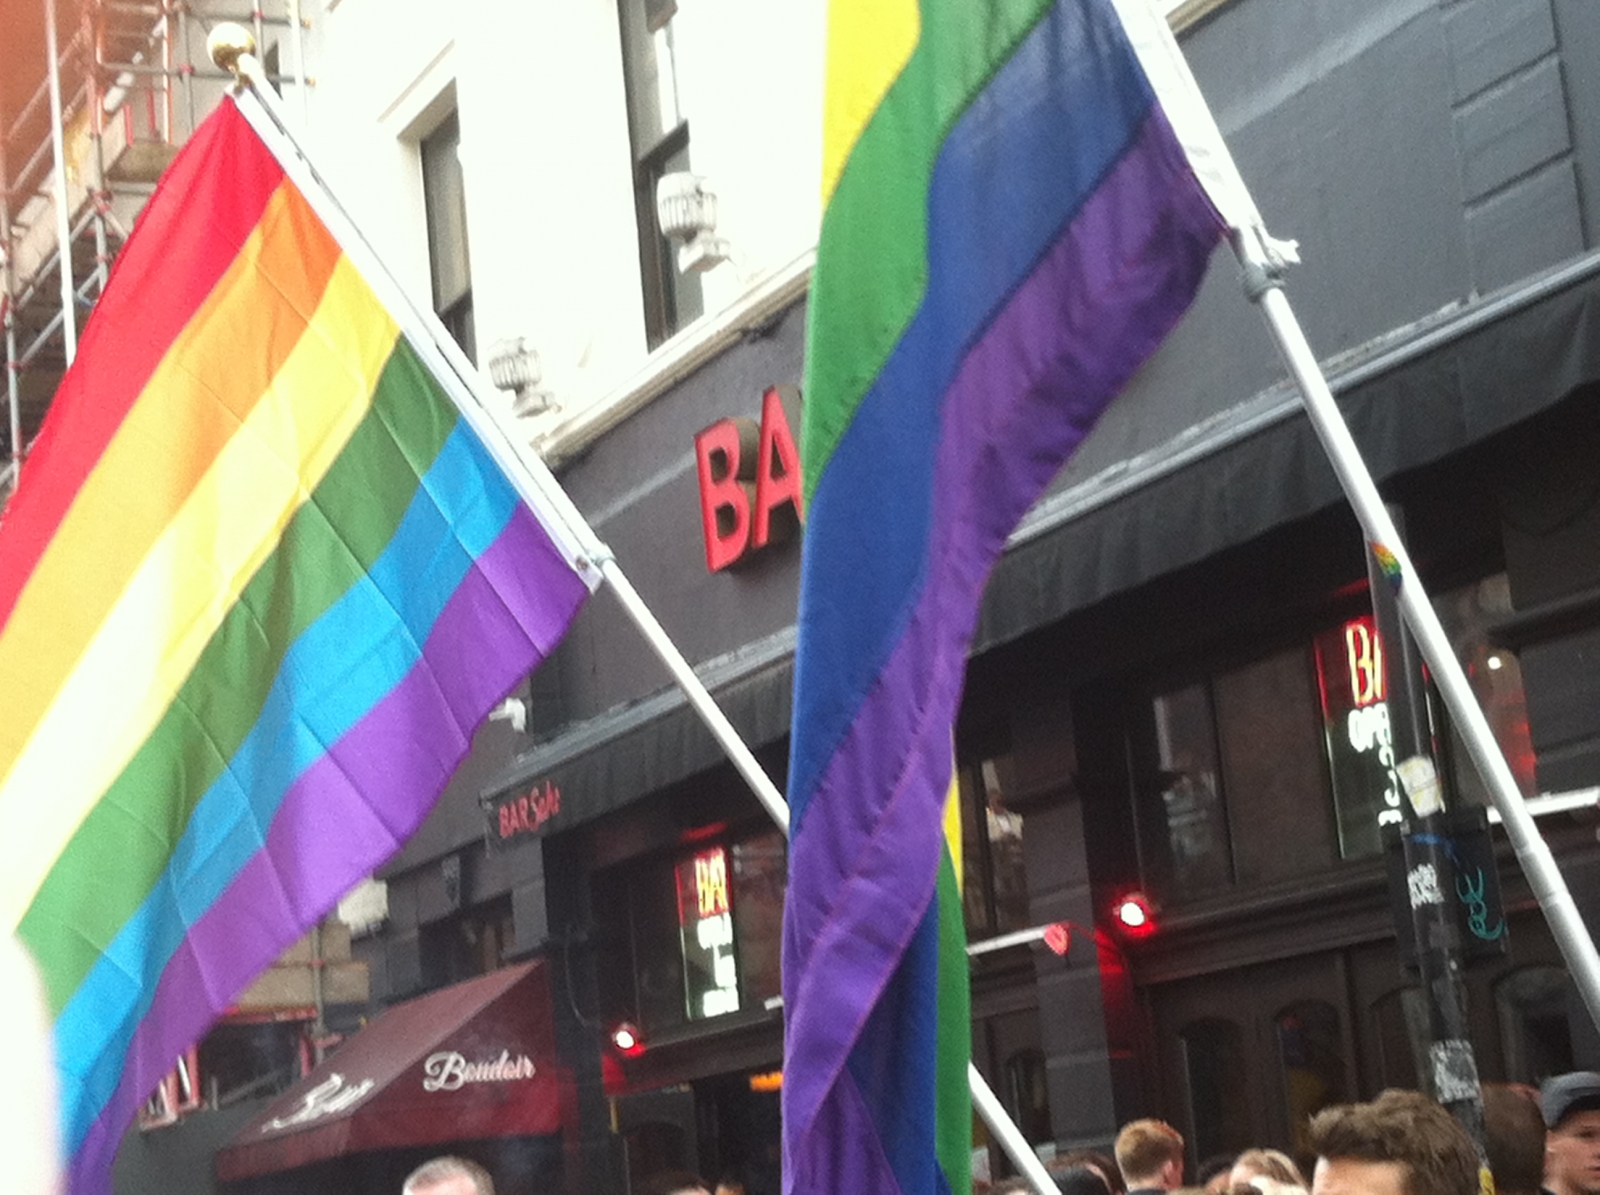 Vigil at Old Compton Street for victims of Orlando shooting